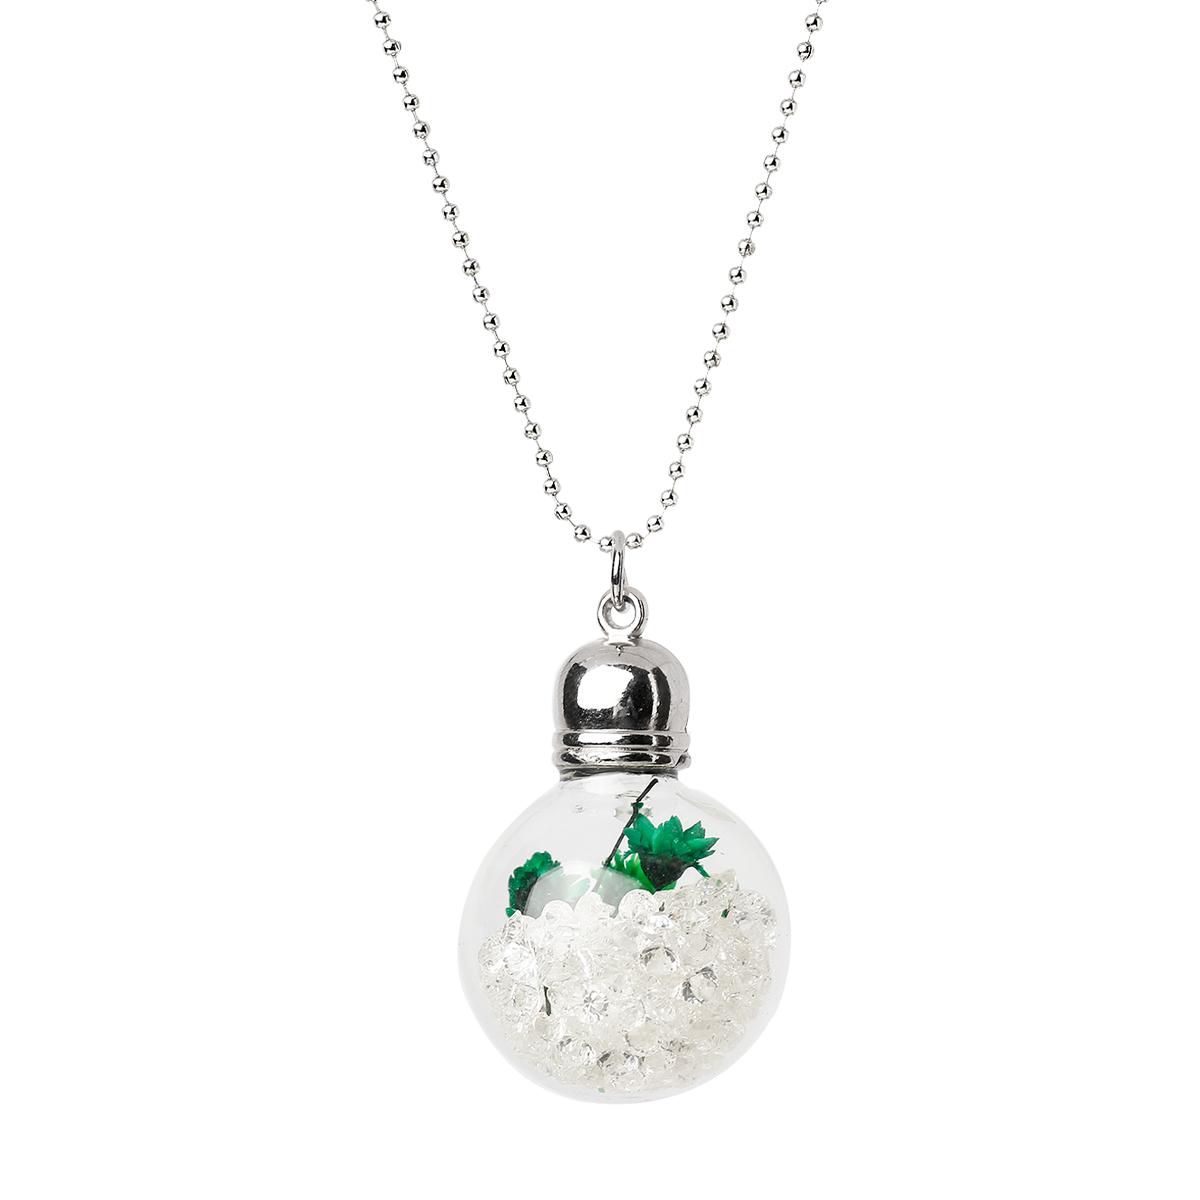 """Glass Bottle Necklace Ball Chain Silver Tone Green Dried Flower Pendant Clear Rhinestone 60.5cm(23 7/8"""")long,1Piece 2015 new(China (Mainland))"""